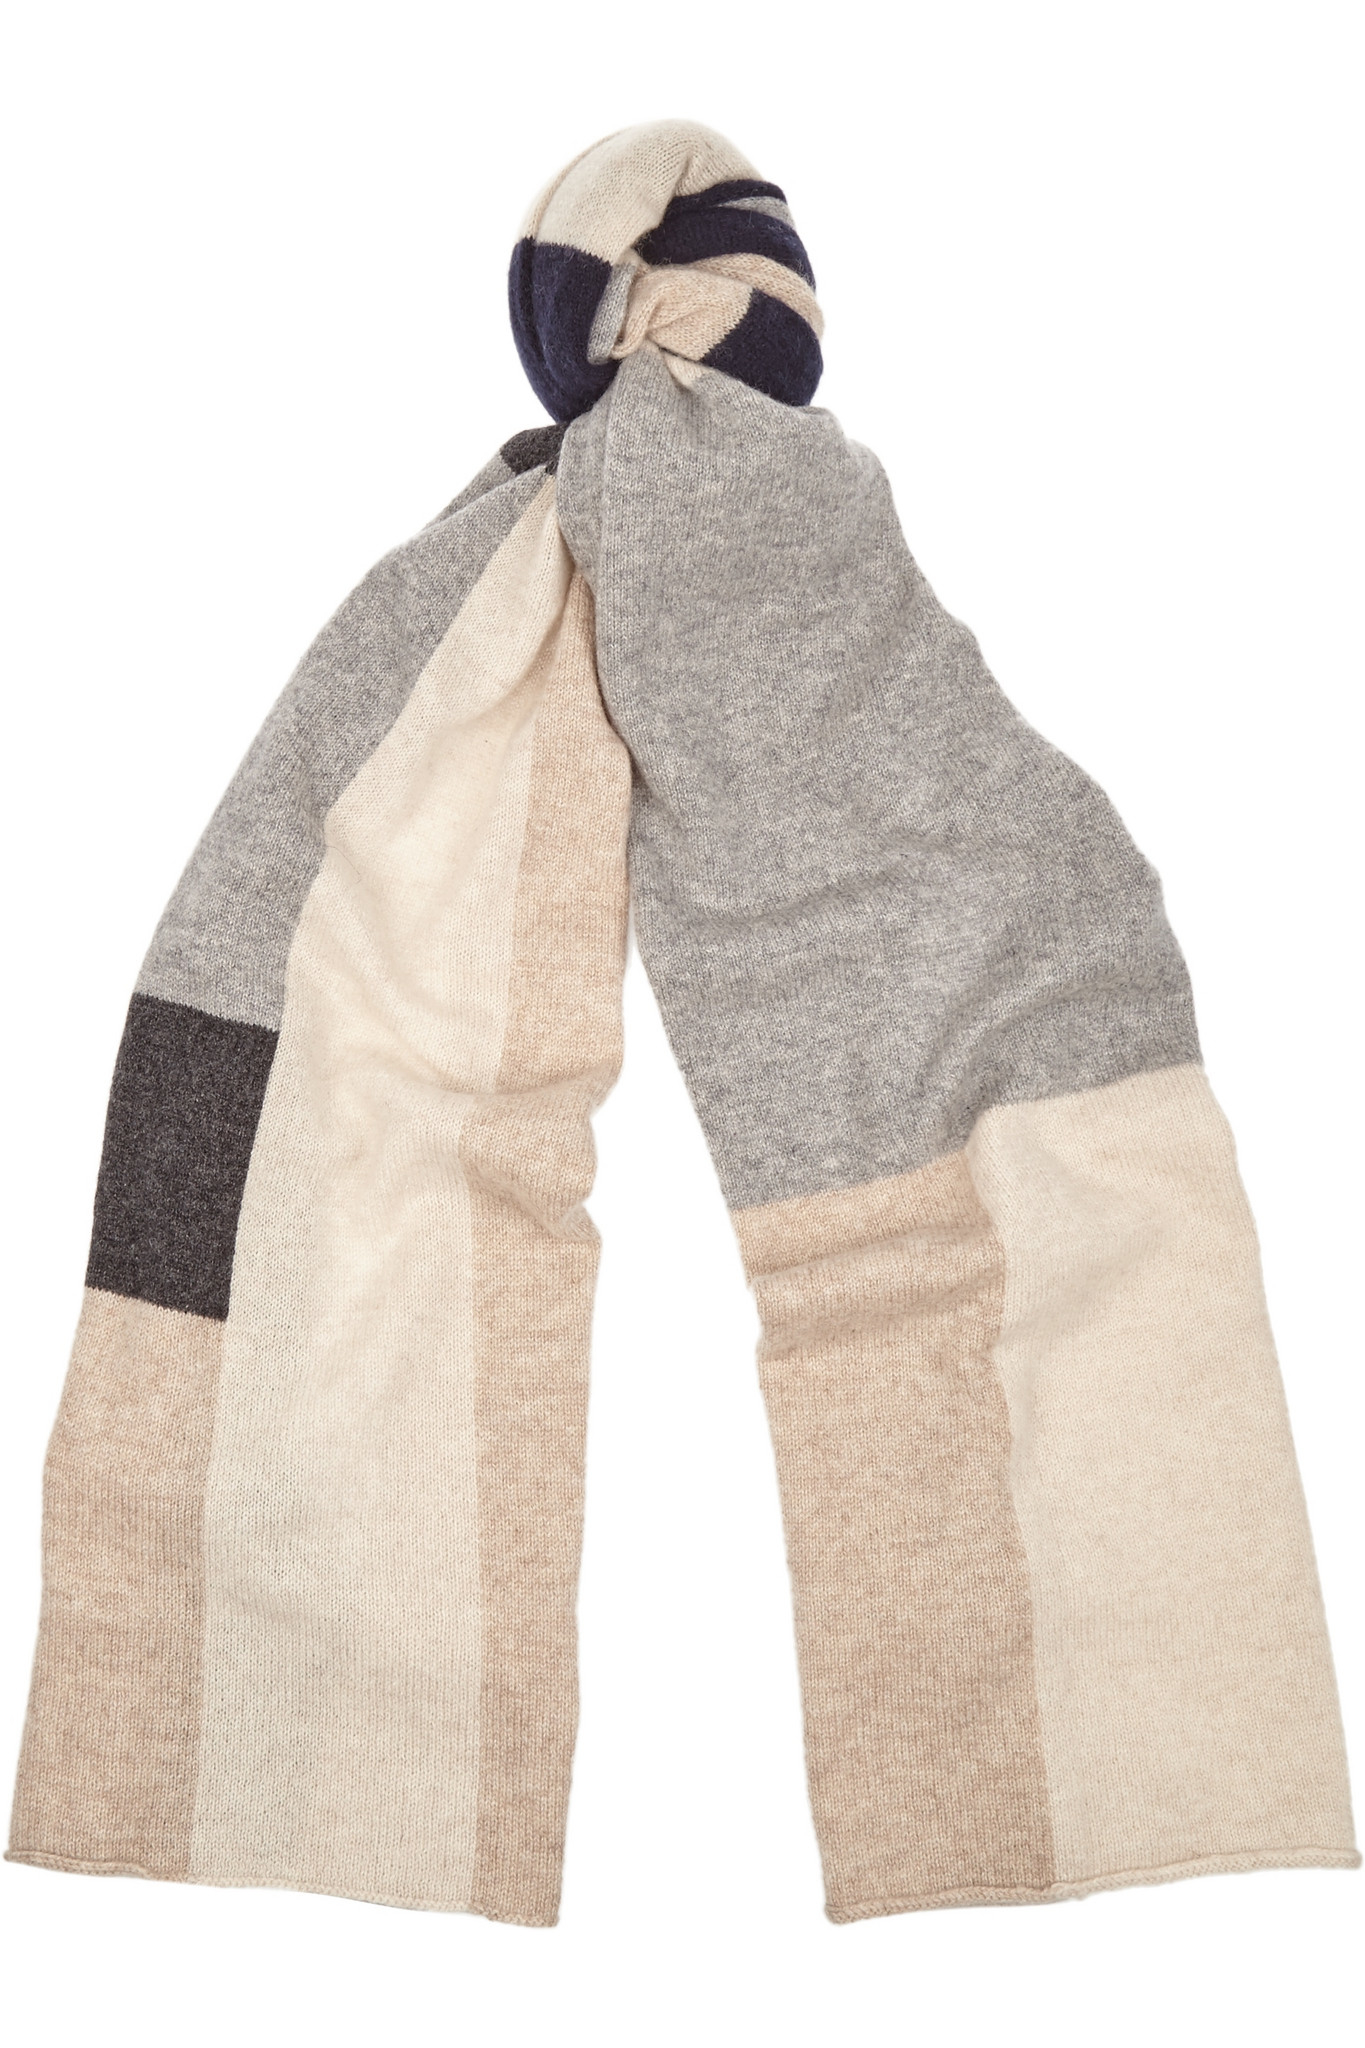 9187793e96435 Madeleine Thompson Color-block Cashmere Scarf in Gray - Lyst